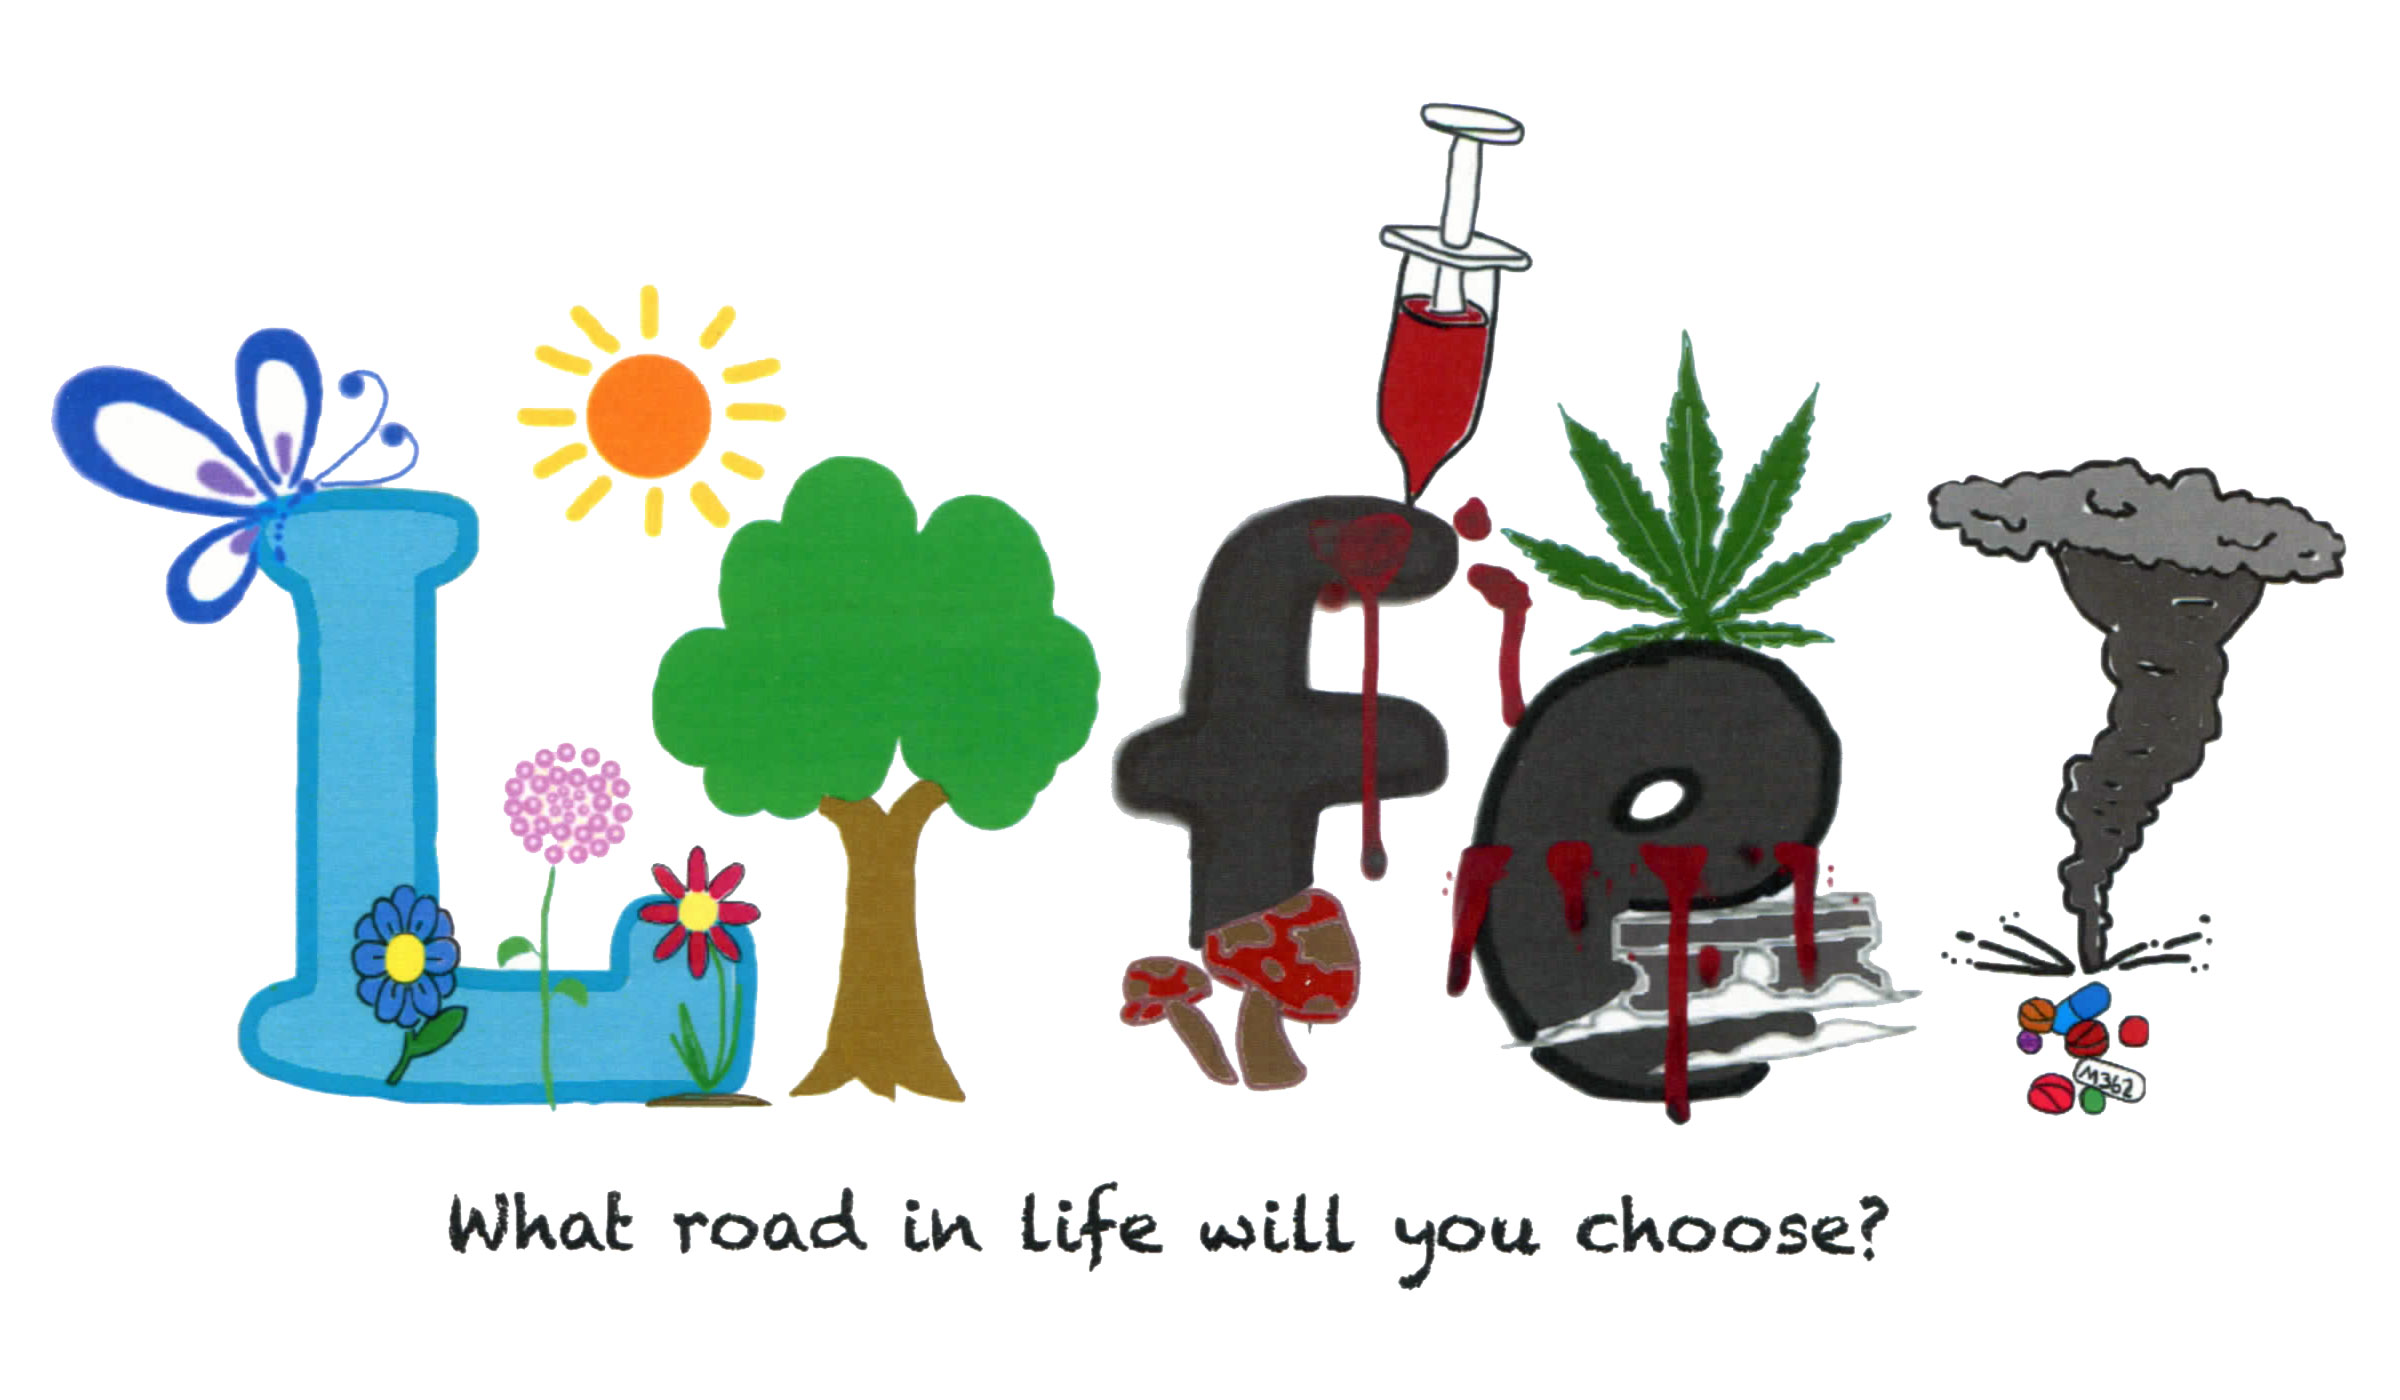 10-what-road-in-life-will-you-choose